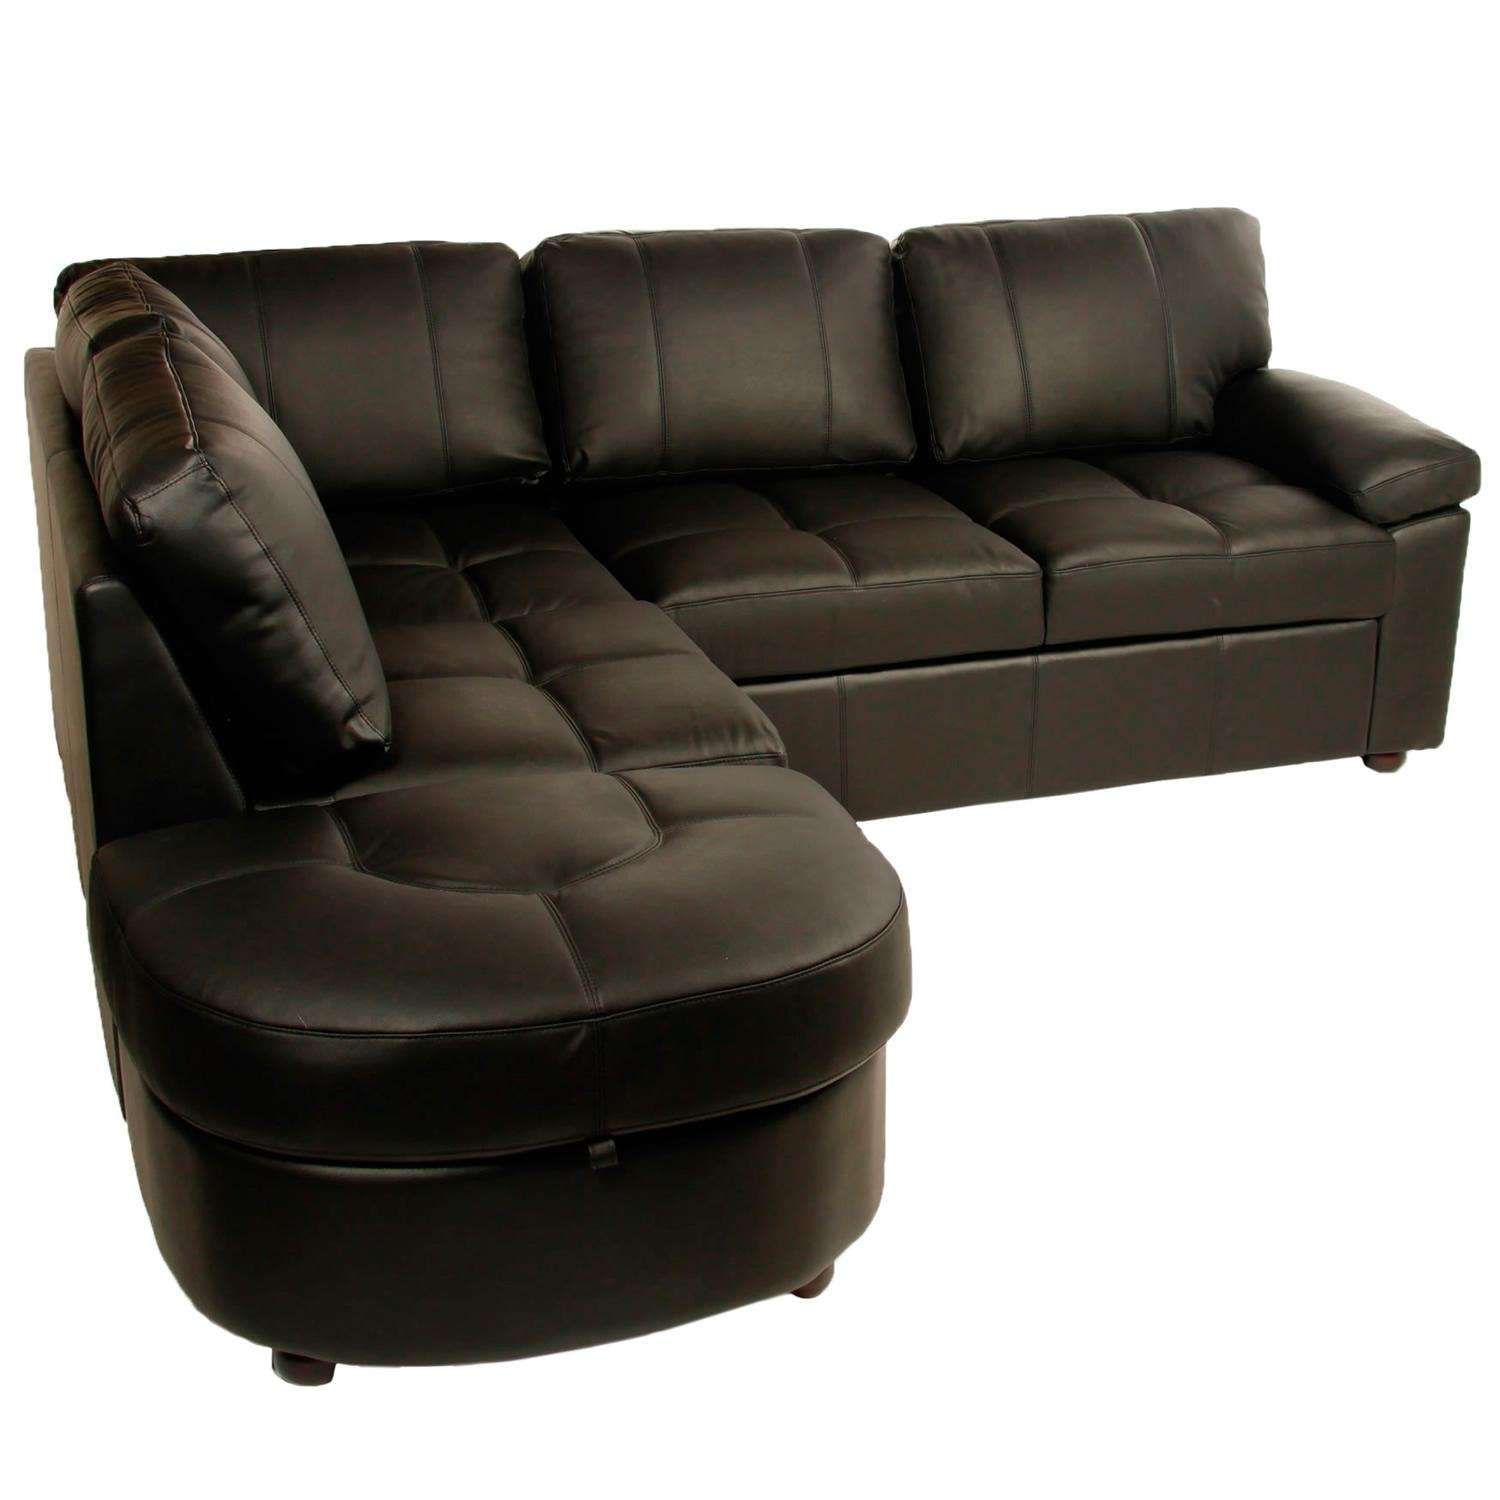 crawford futon sofa bed with storage leather recliners on sale 20 inspirations beds ideas